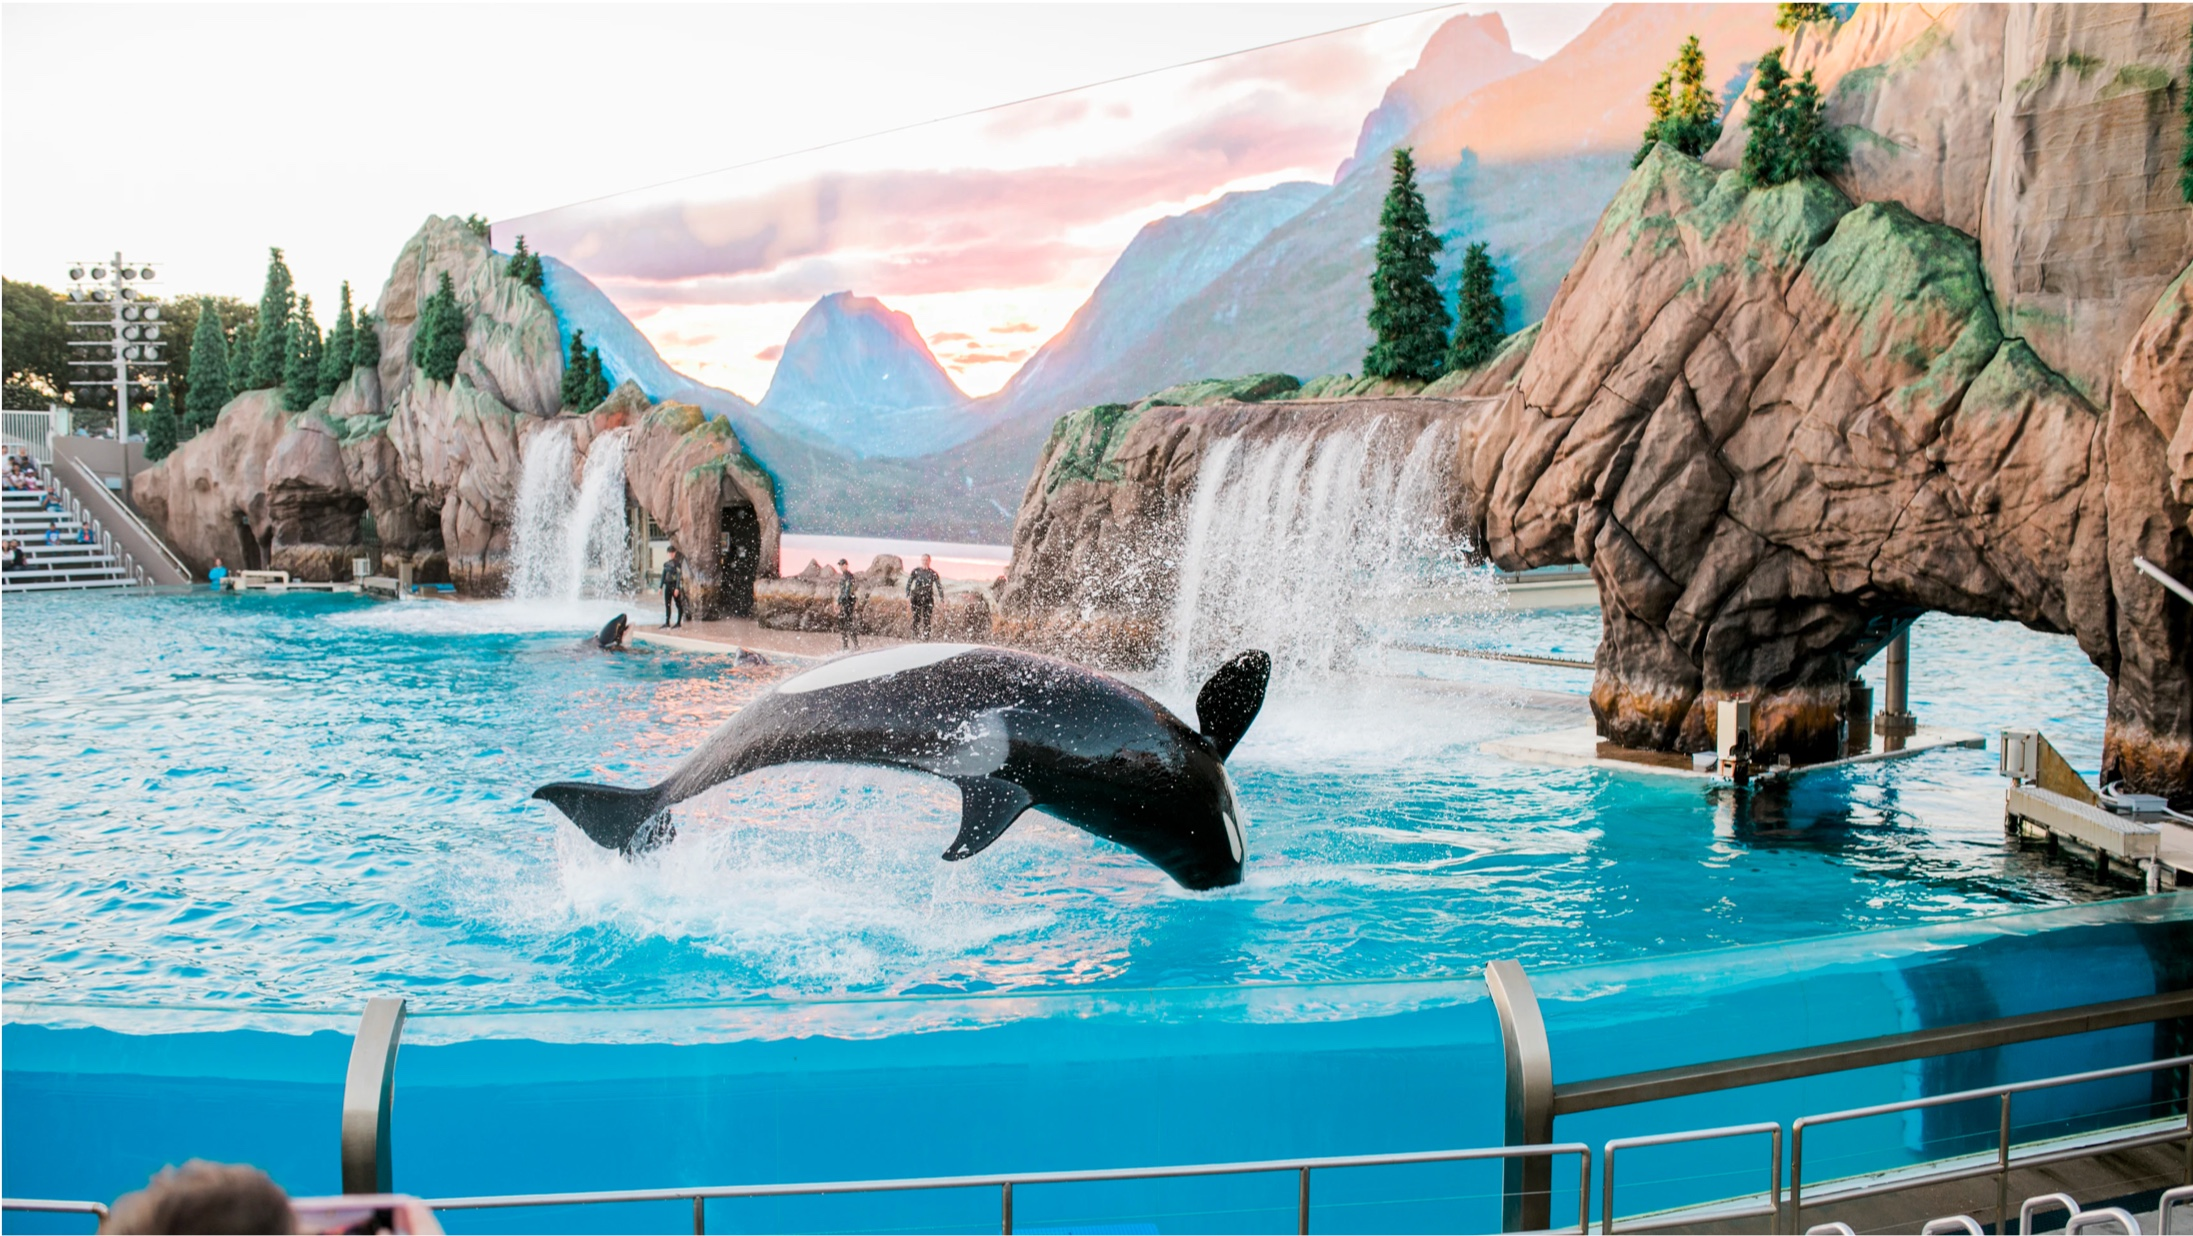 black and white orca whale jumping in a pool of water with rocks and waterfalls coming down and tall mountains in the background. Gated pool area and stadium seating behind.